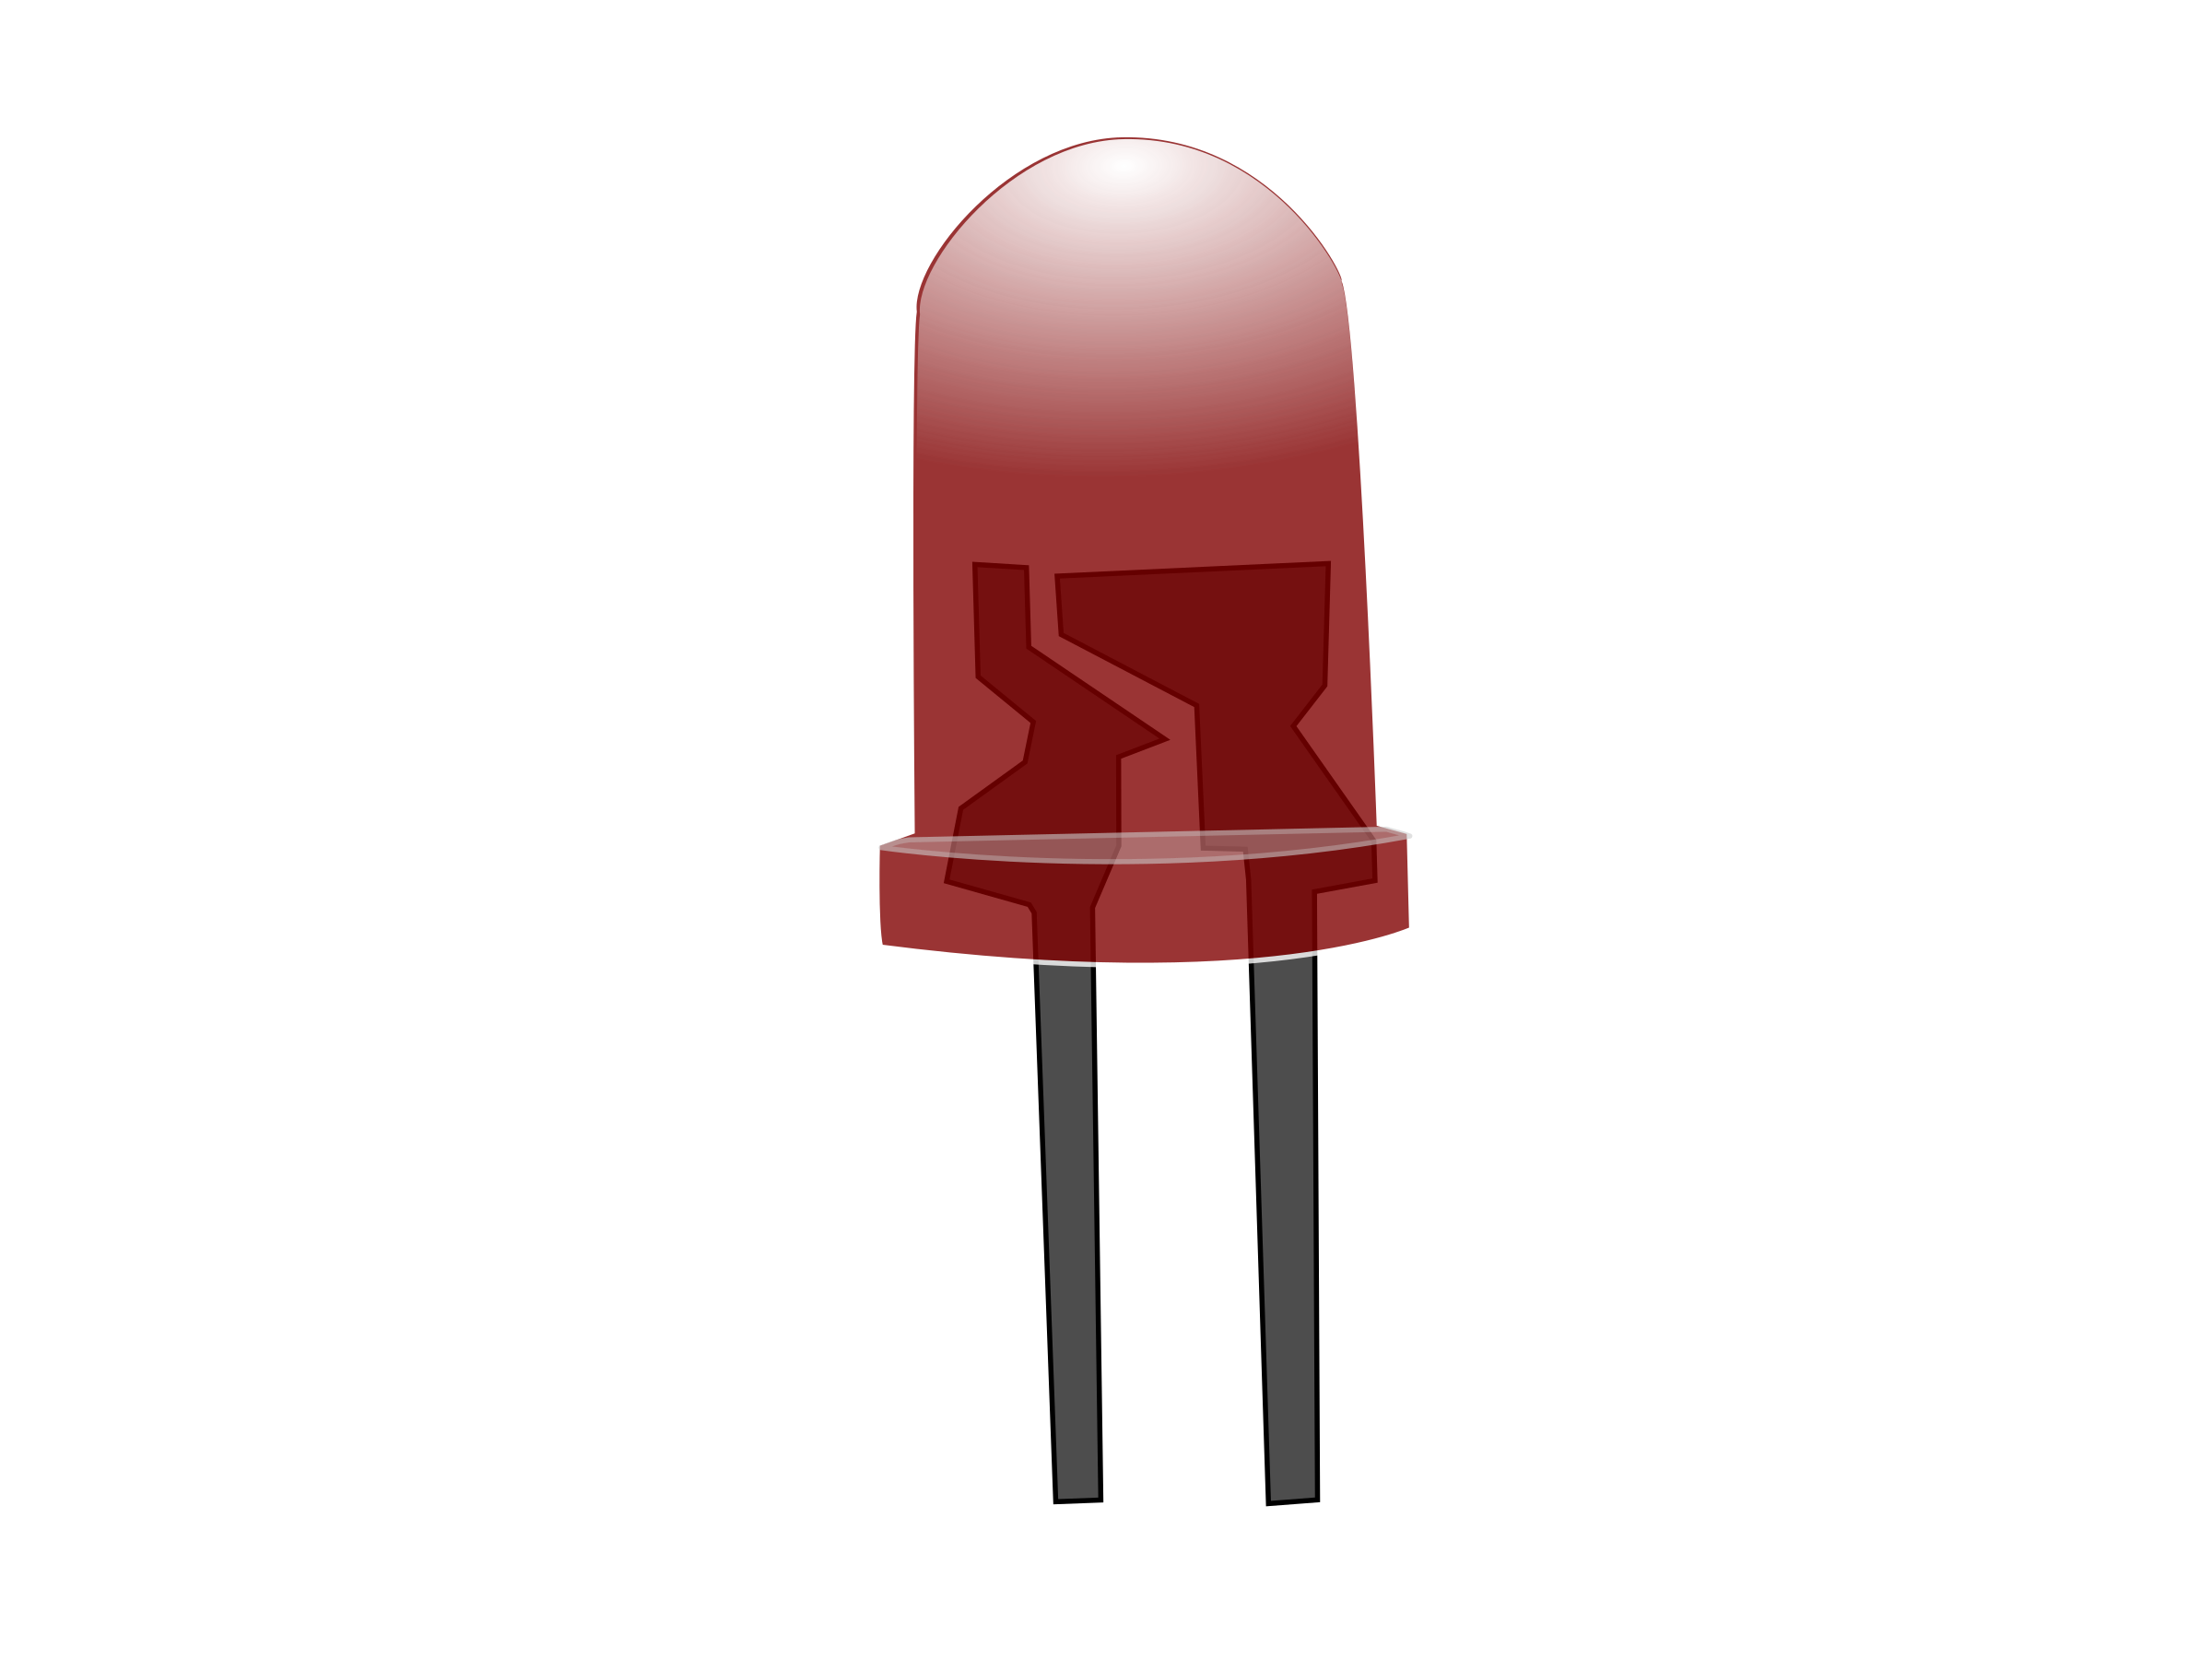 Lamp clipart red lamp. Led off big image